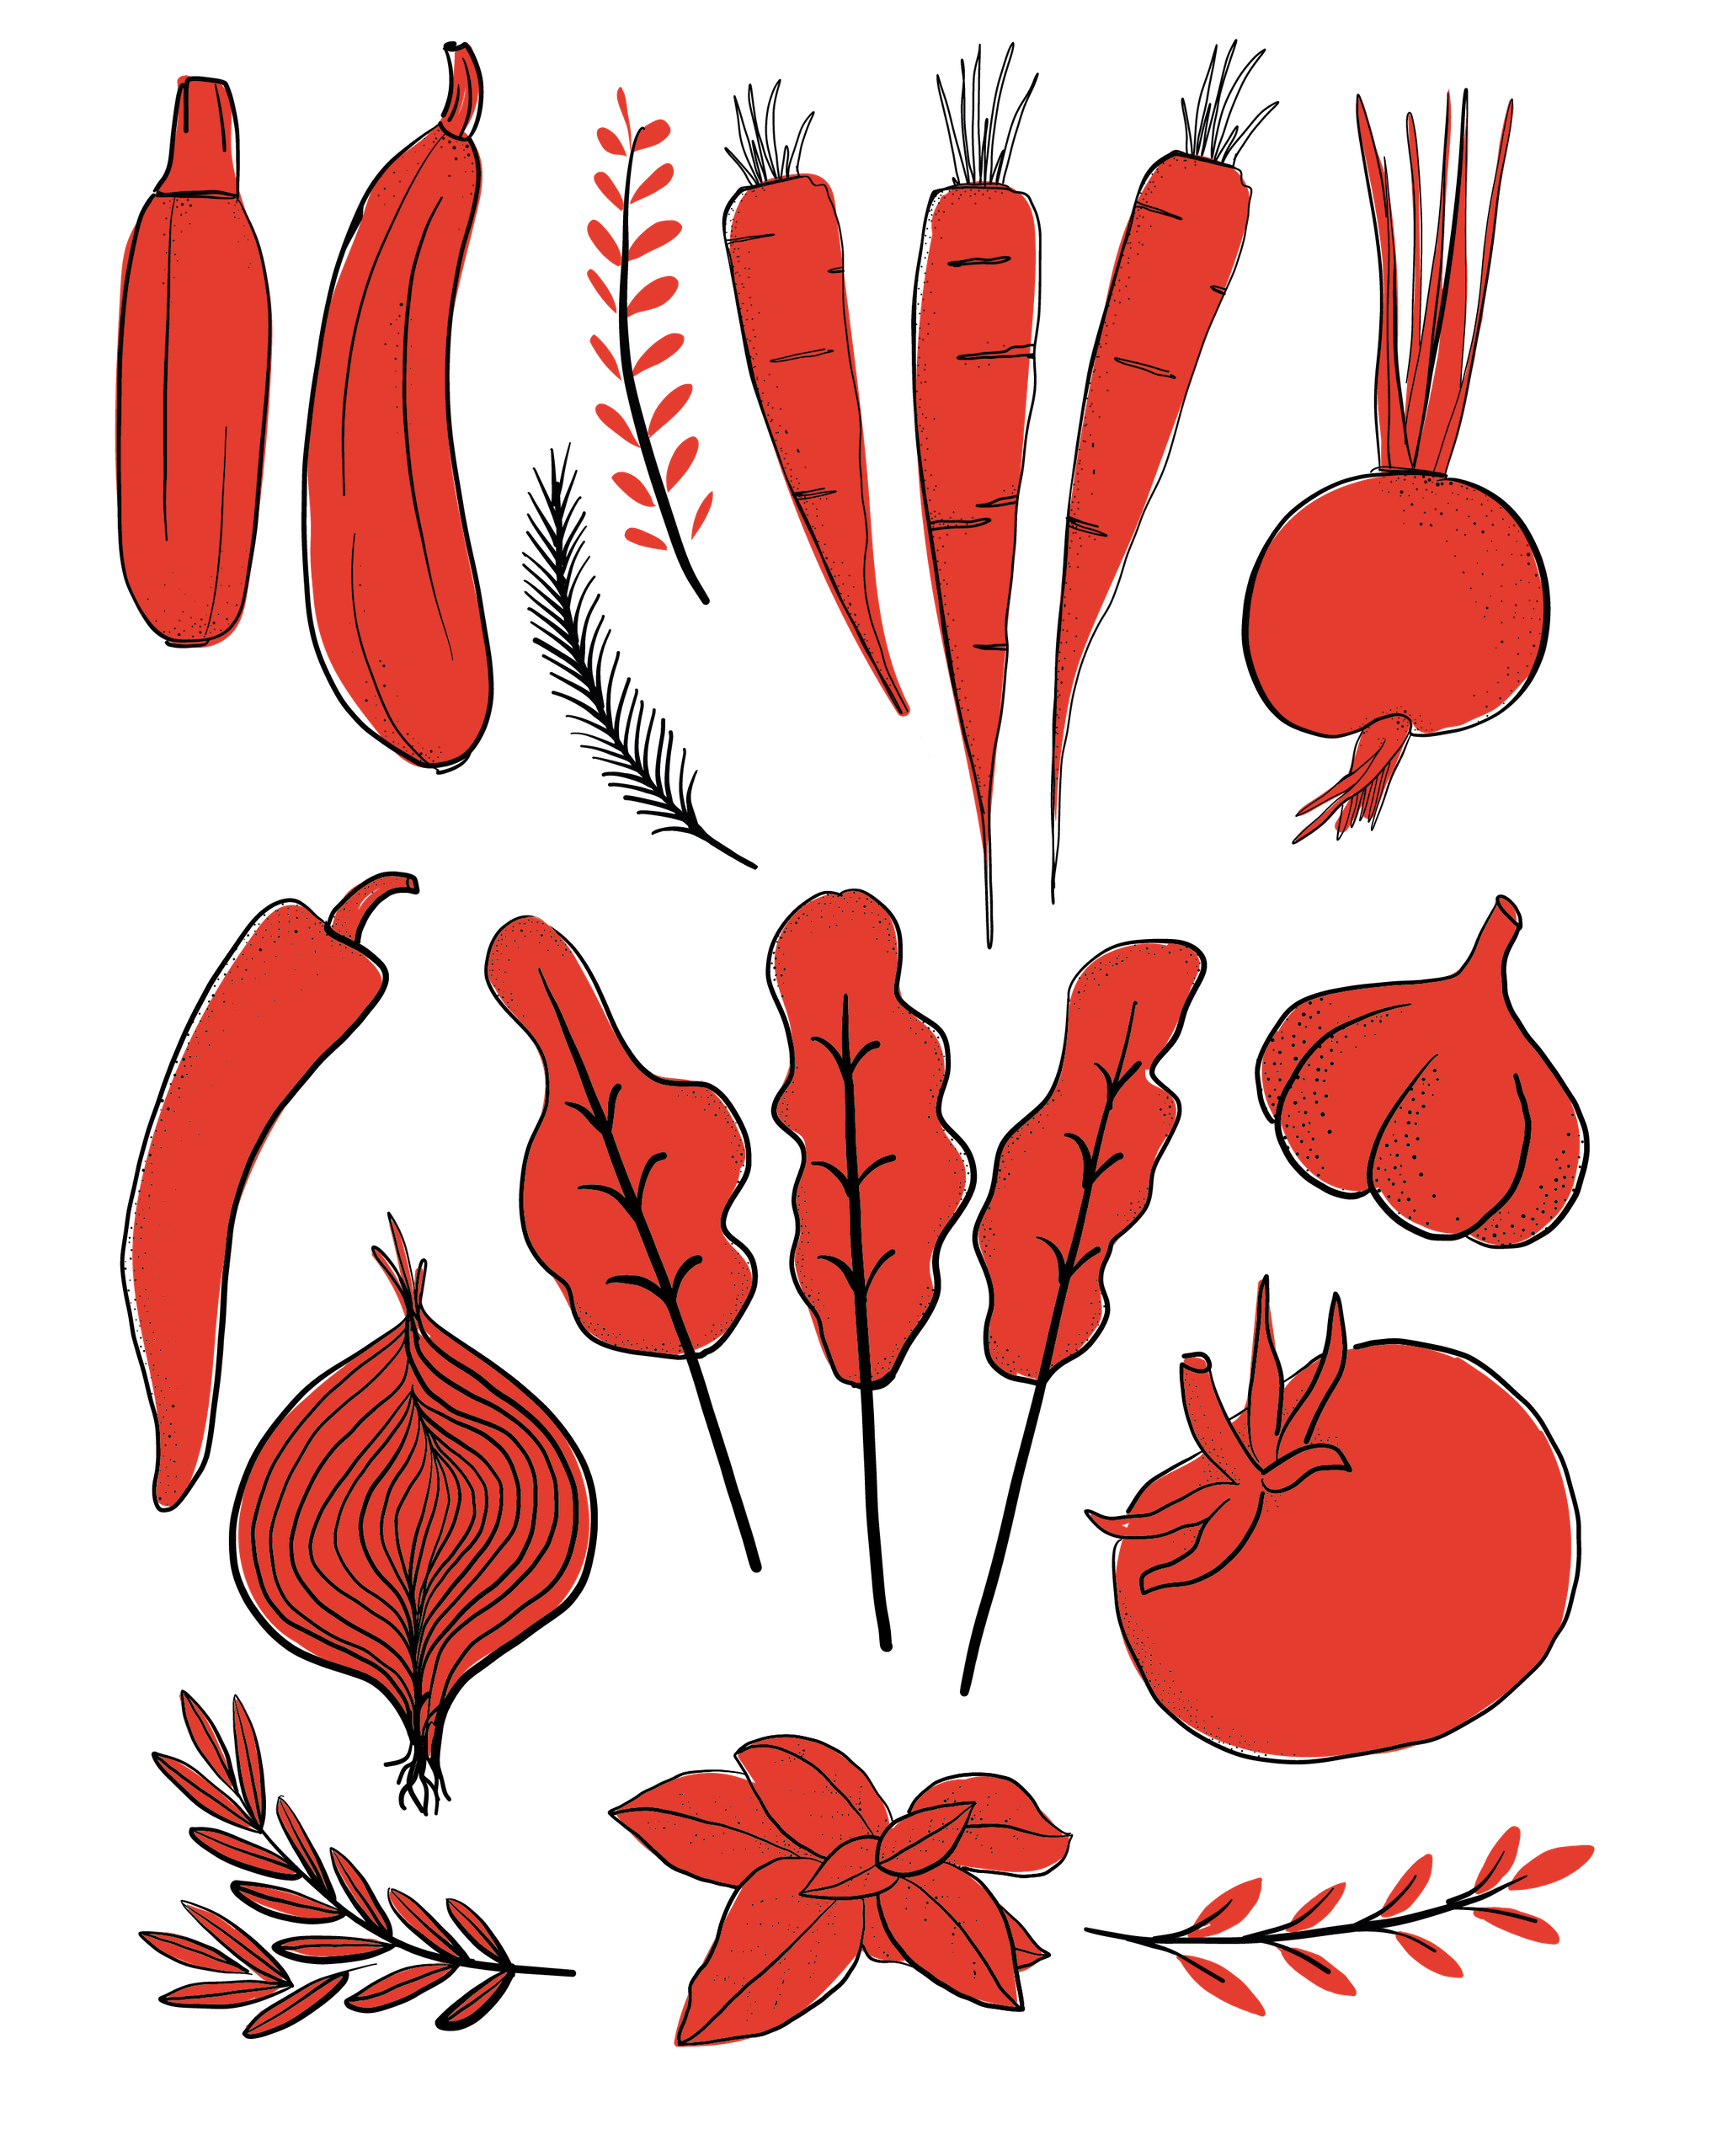 Illustration of vegetables all colored red.